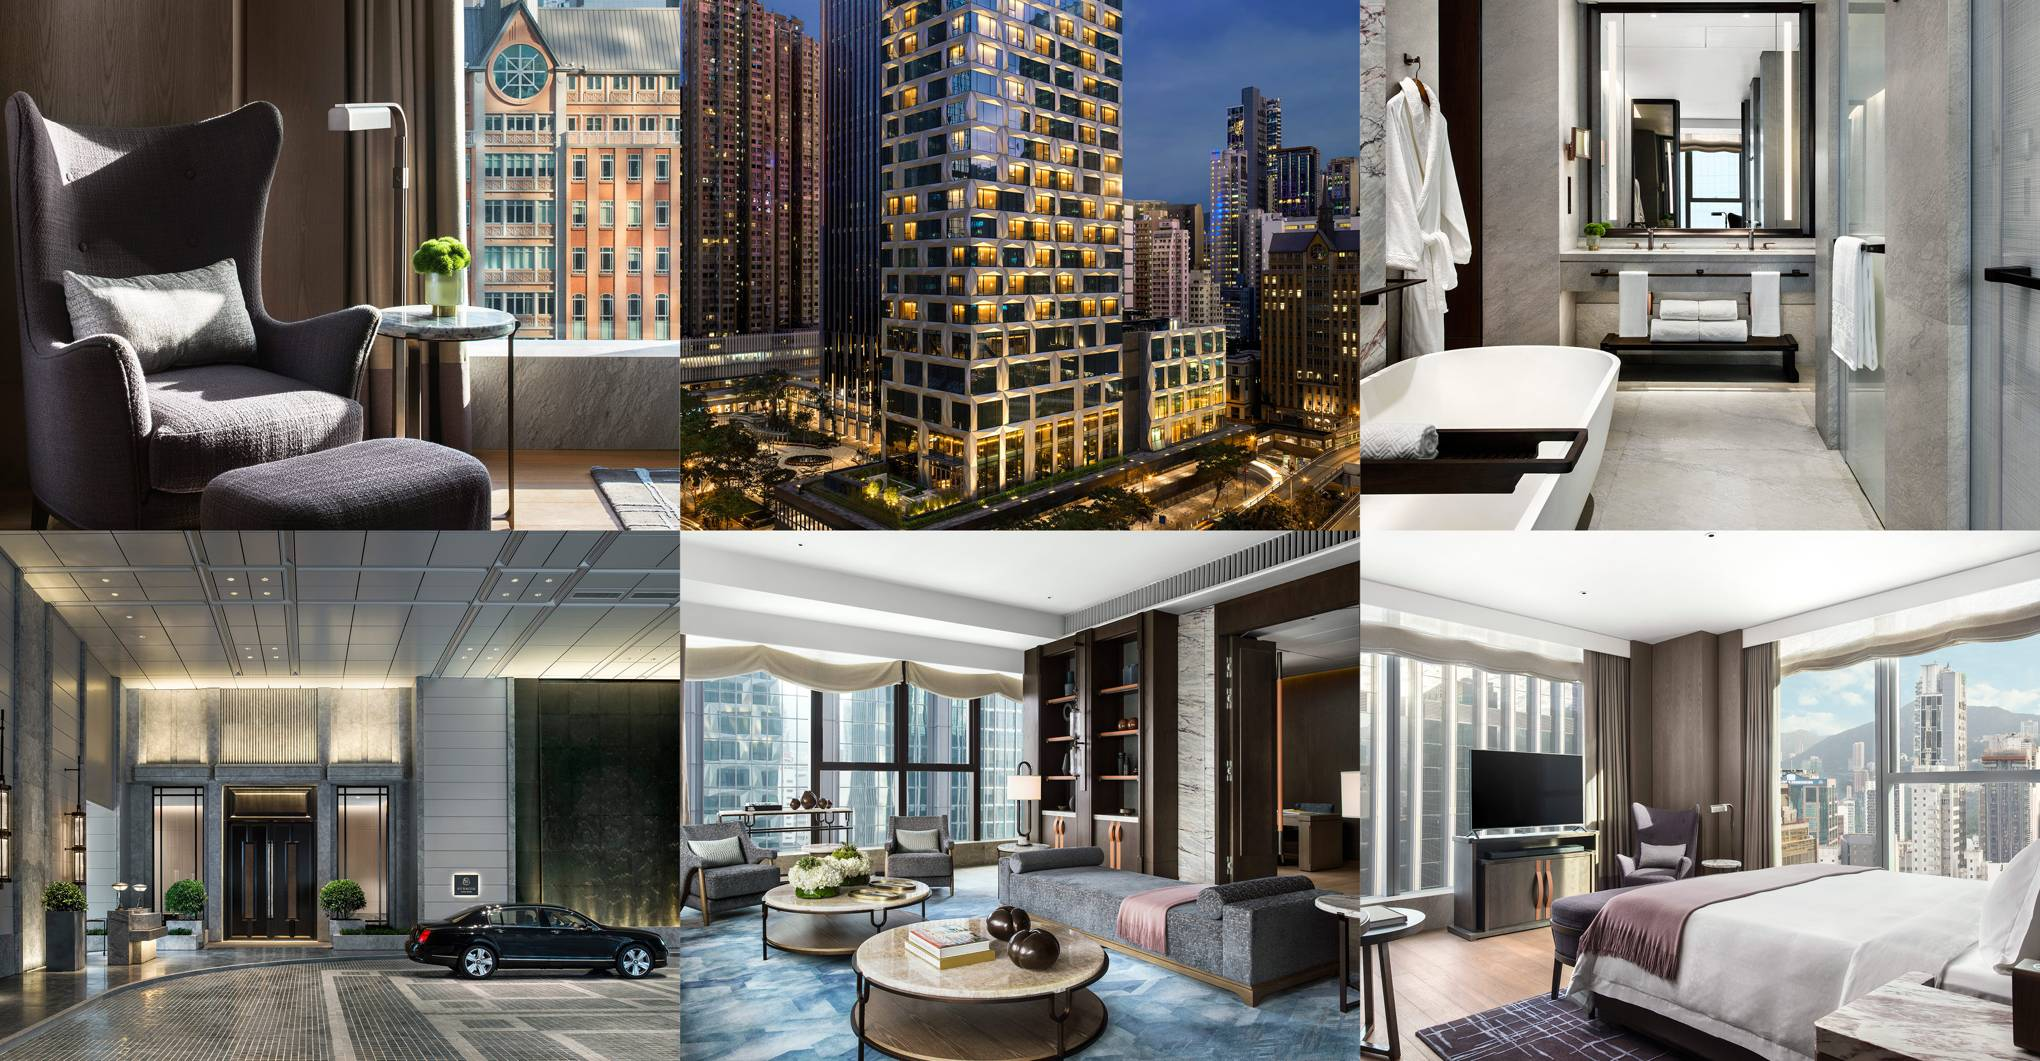 The St Regis Hong Kong hotel review: First In